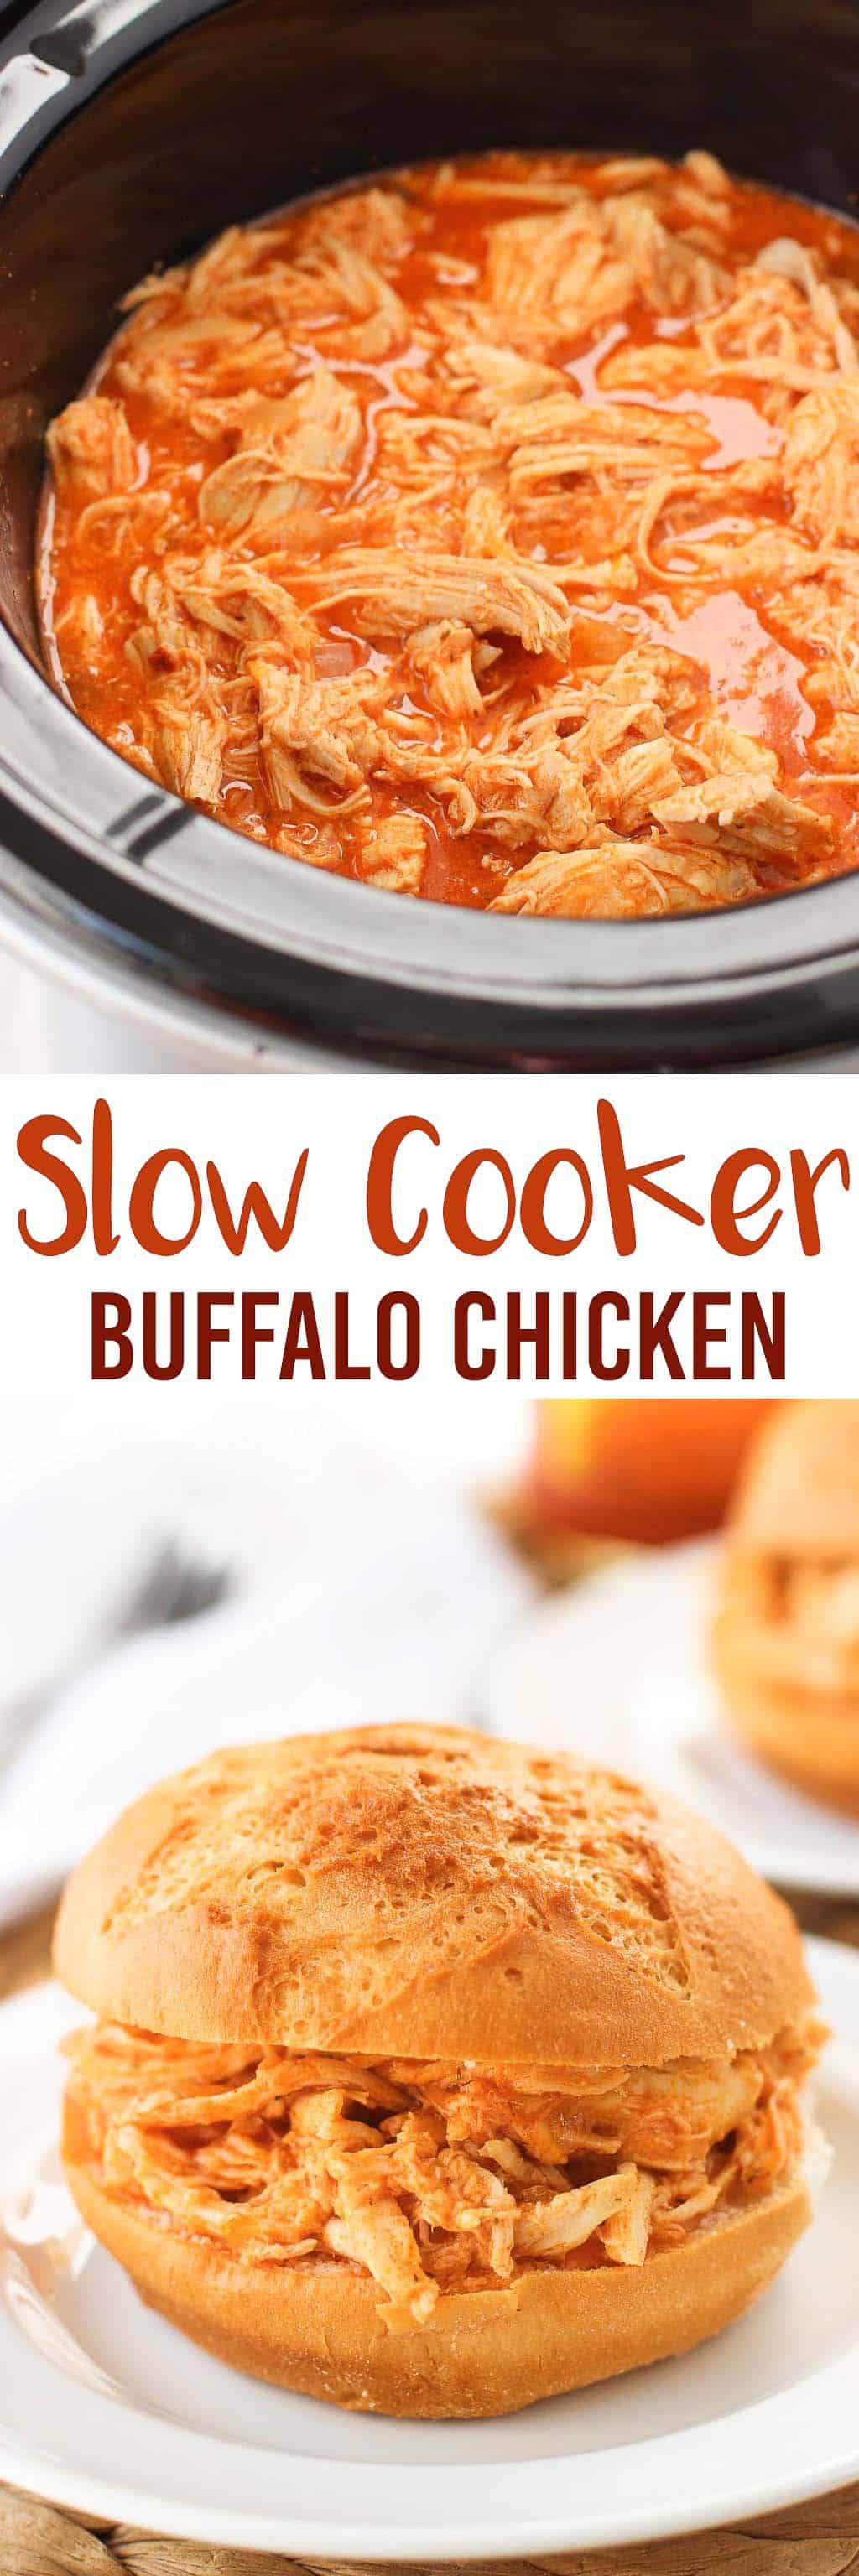 A two image collage of buffalo chicken in a slow cooker and a chicken sandwich with the recipe title in between.